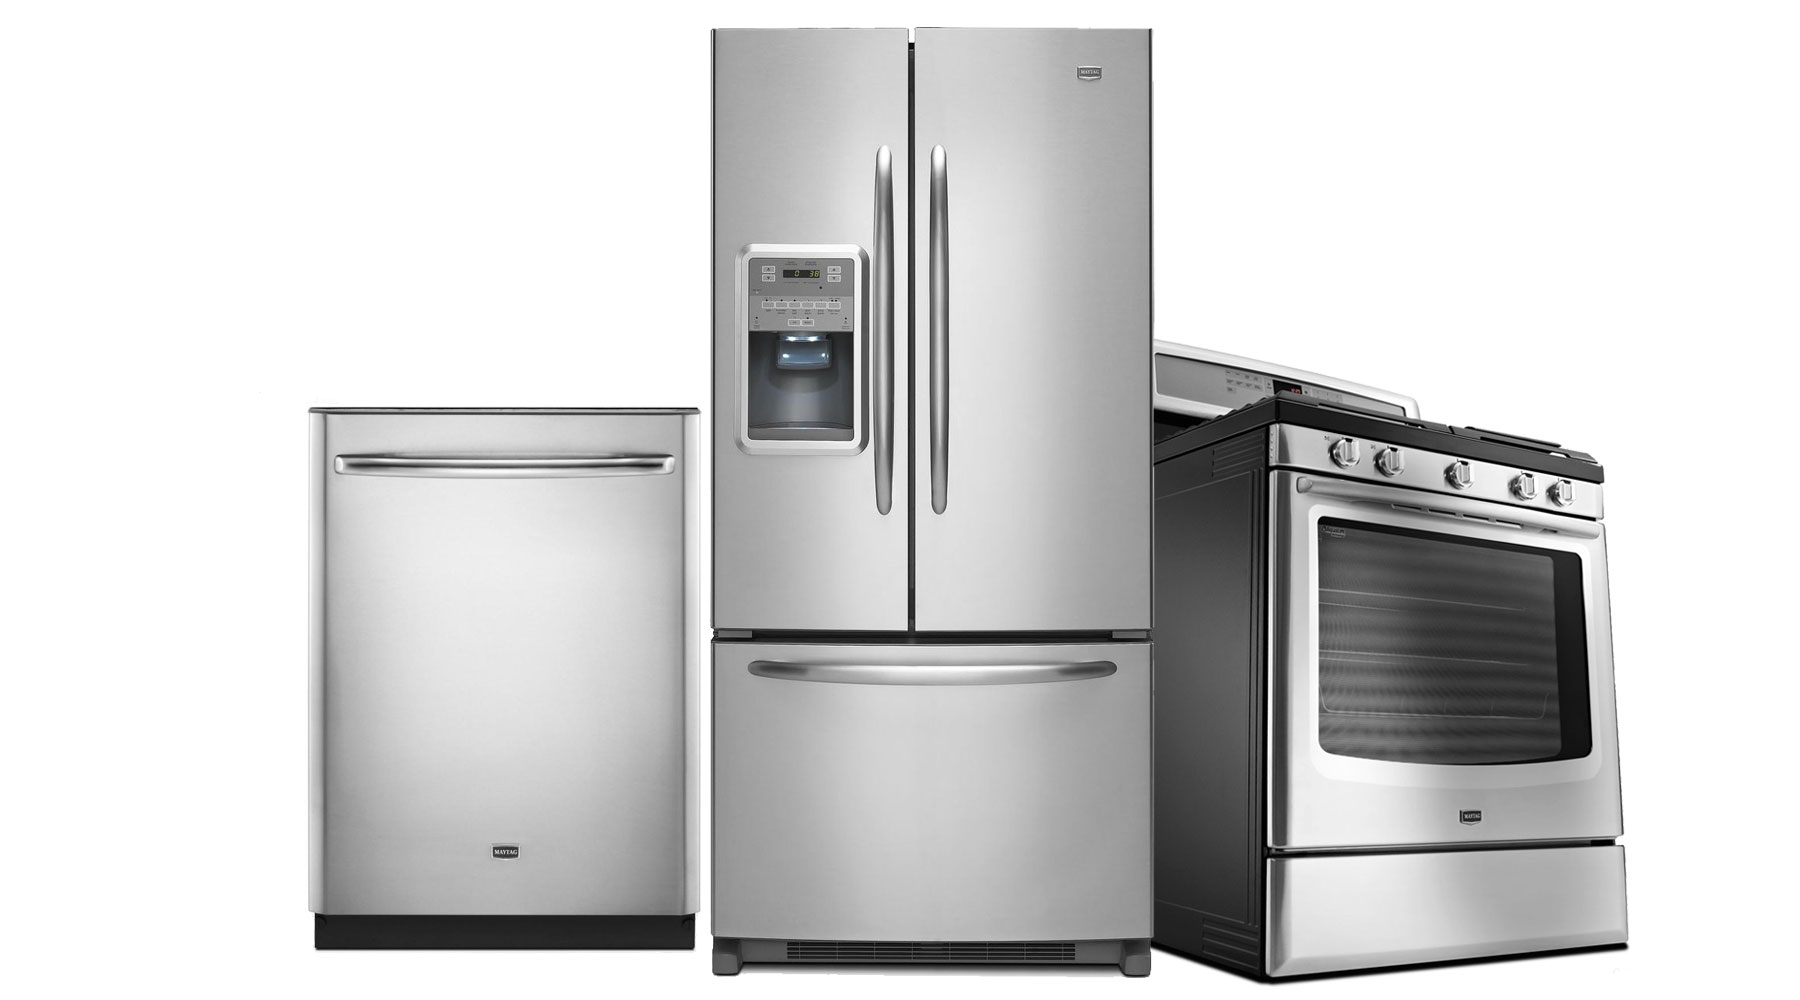 Product review maytag kitchen appliances row house reno - Maytag whirlpool ...